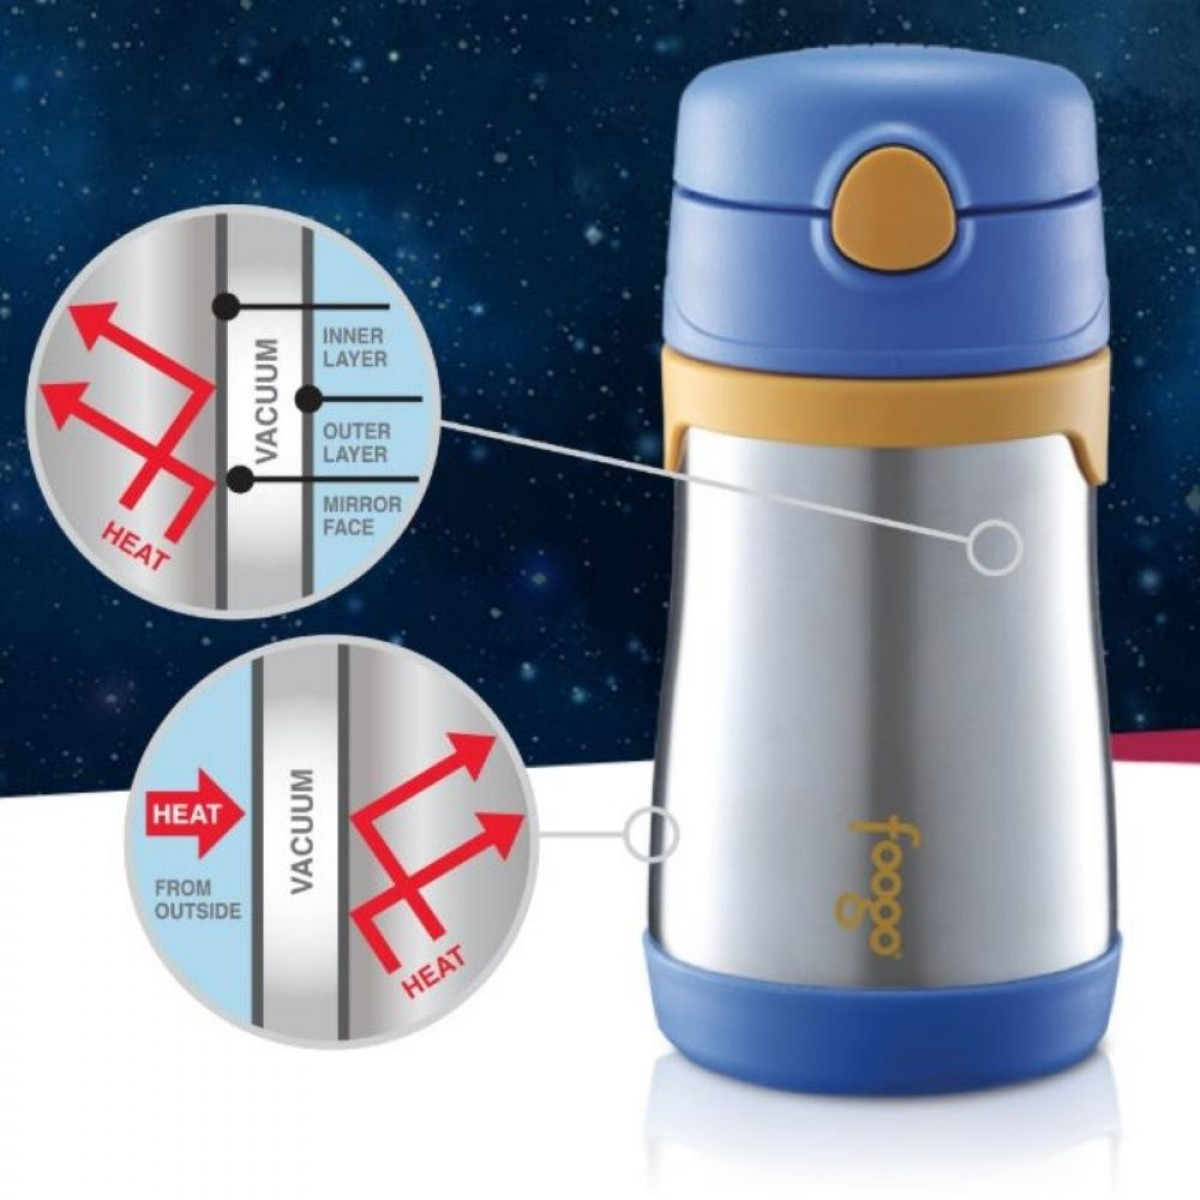 Thermos JBJ-302 Stylish Food Jar 300ml + BS535 Foogo Straw Bottle 290ml (Pink/Blue) SET